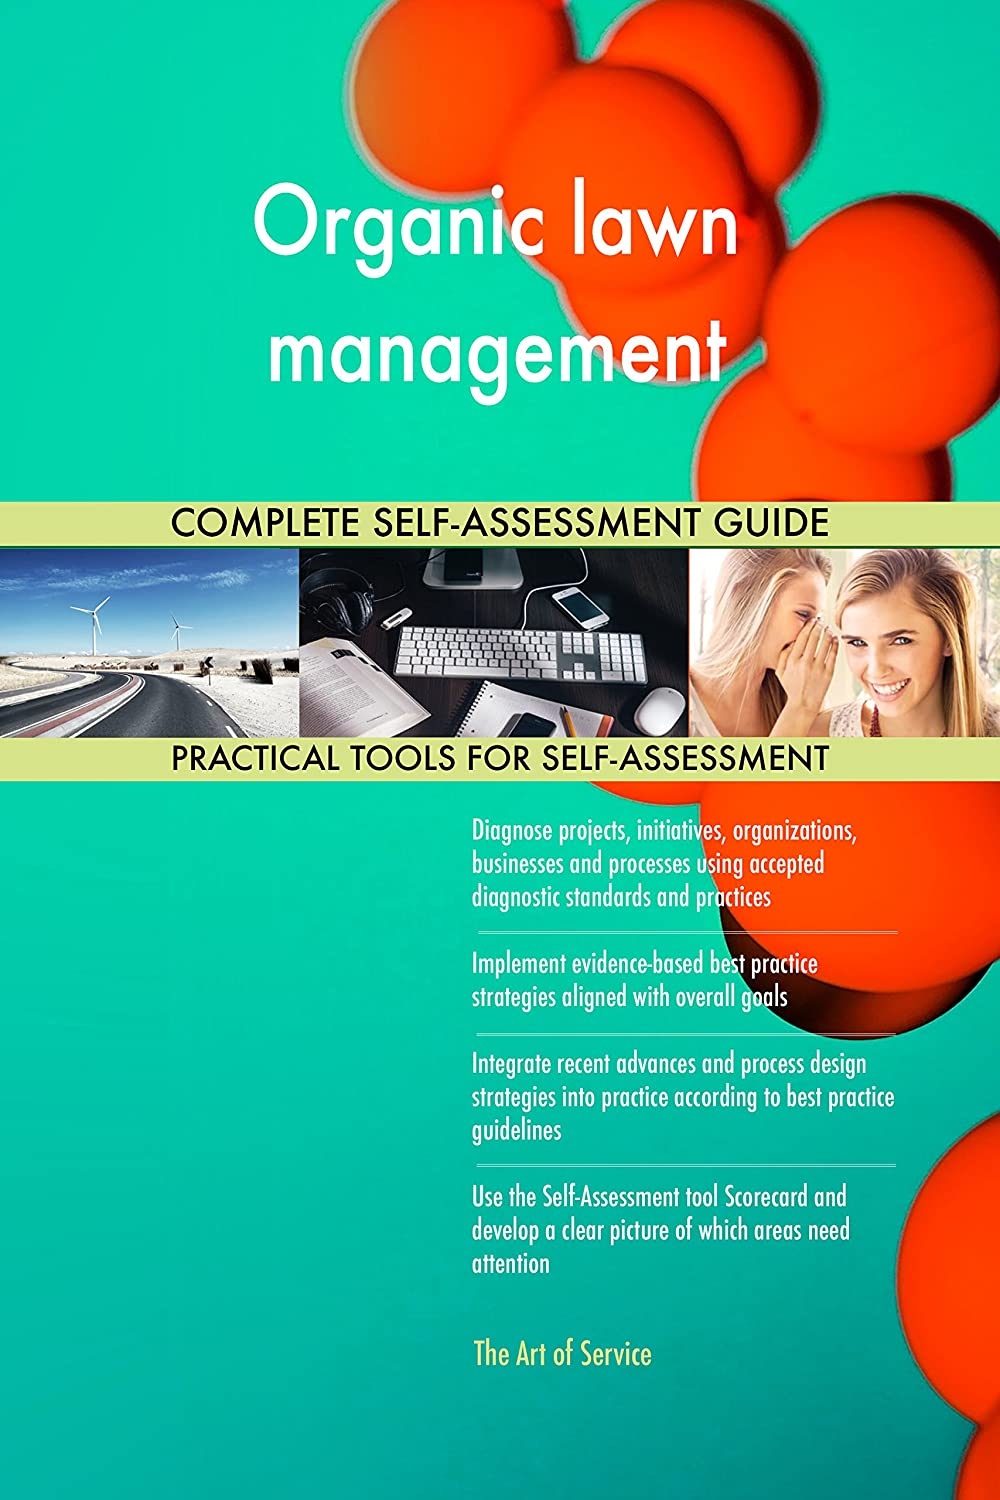 Organic lawn management Toolkit: best-practice templates, step-by-step work plans and maturity diagnostics